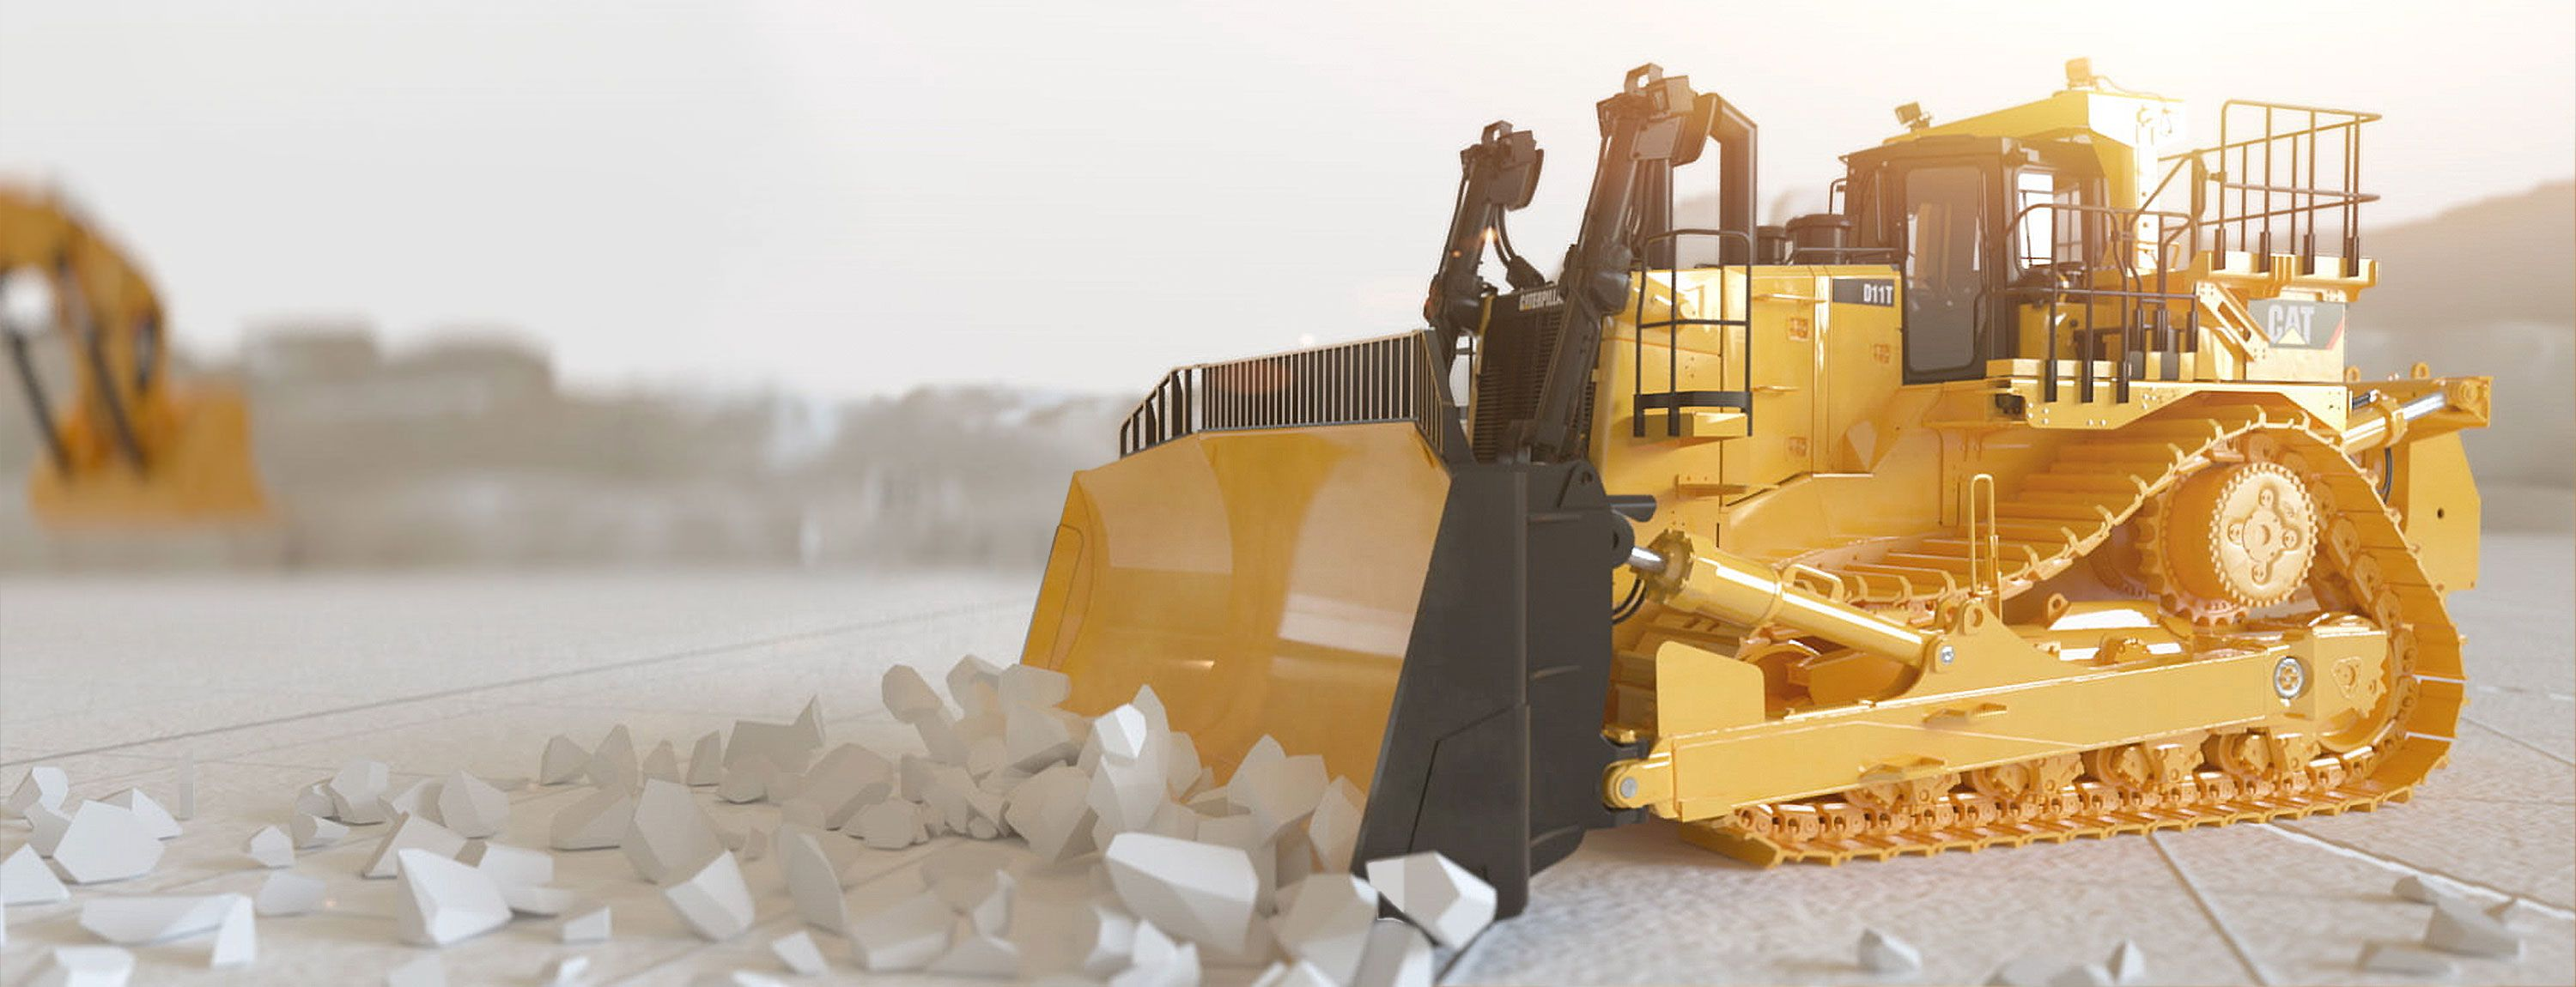 Wear & Maintenance Parts for Mining